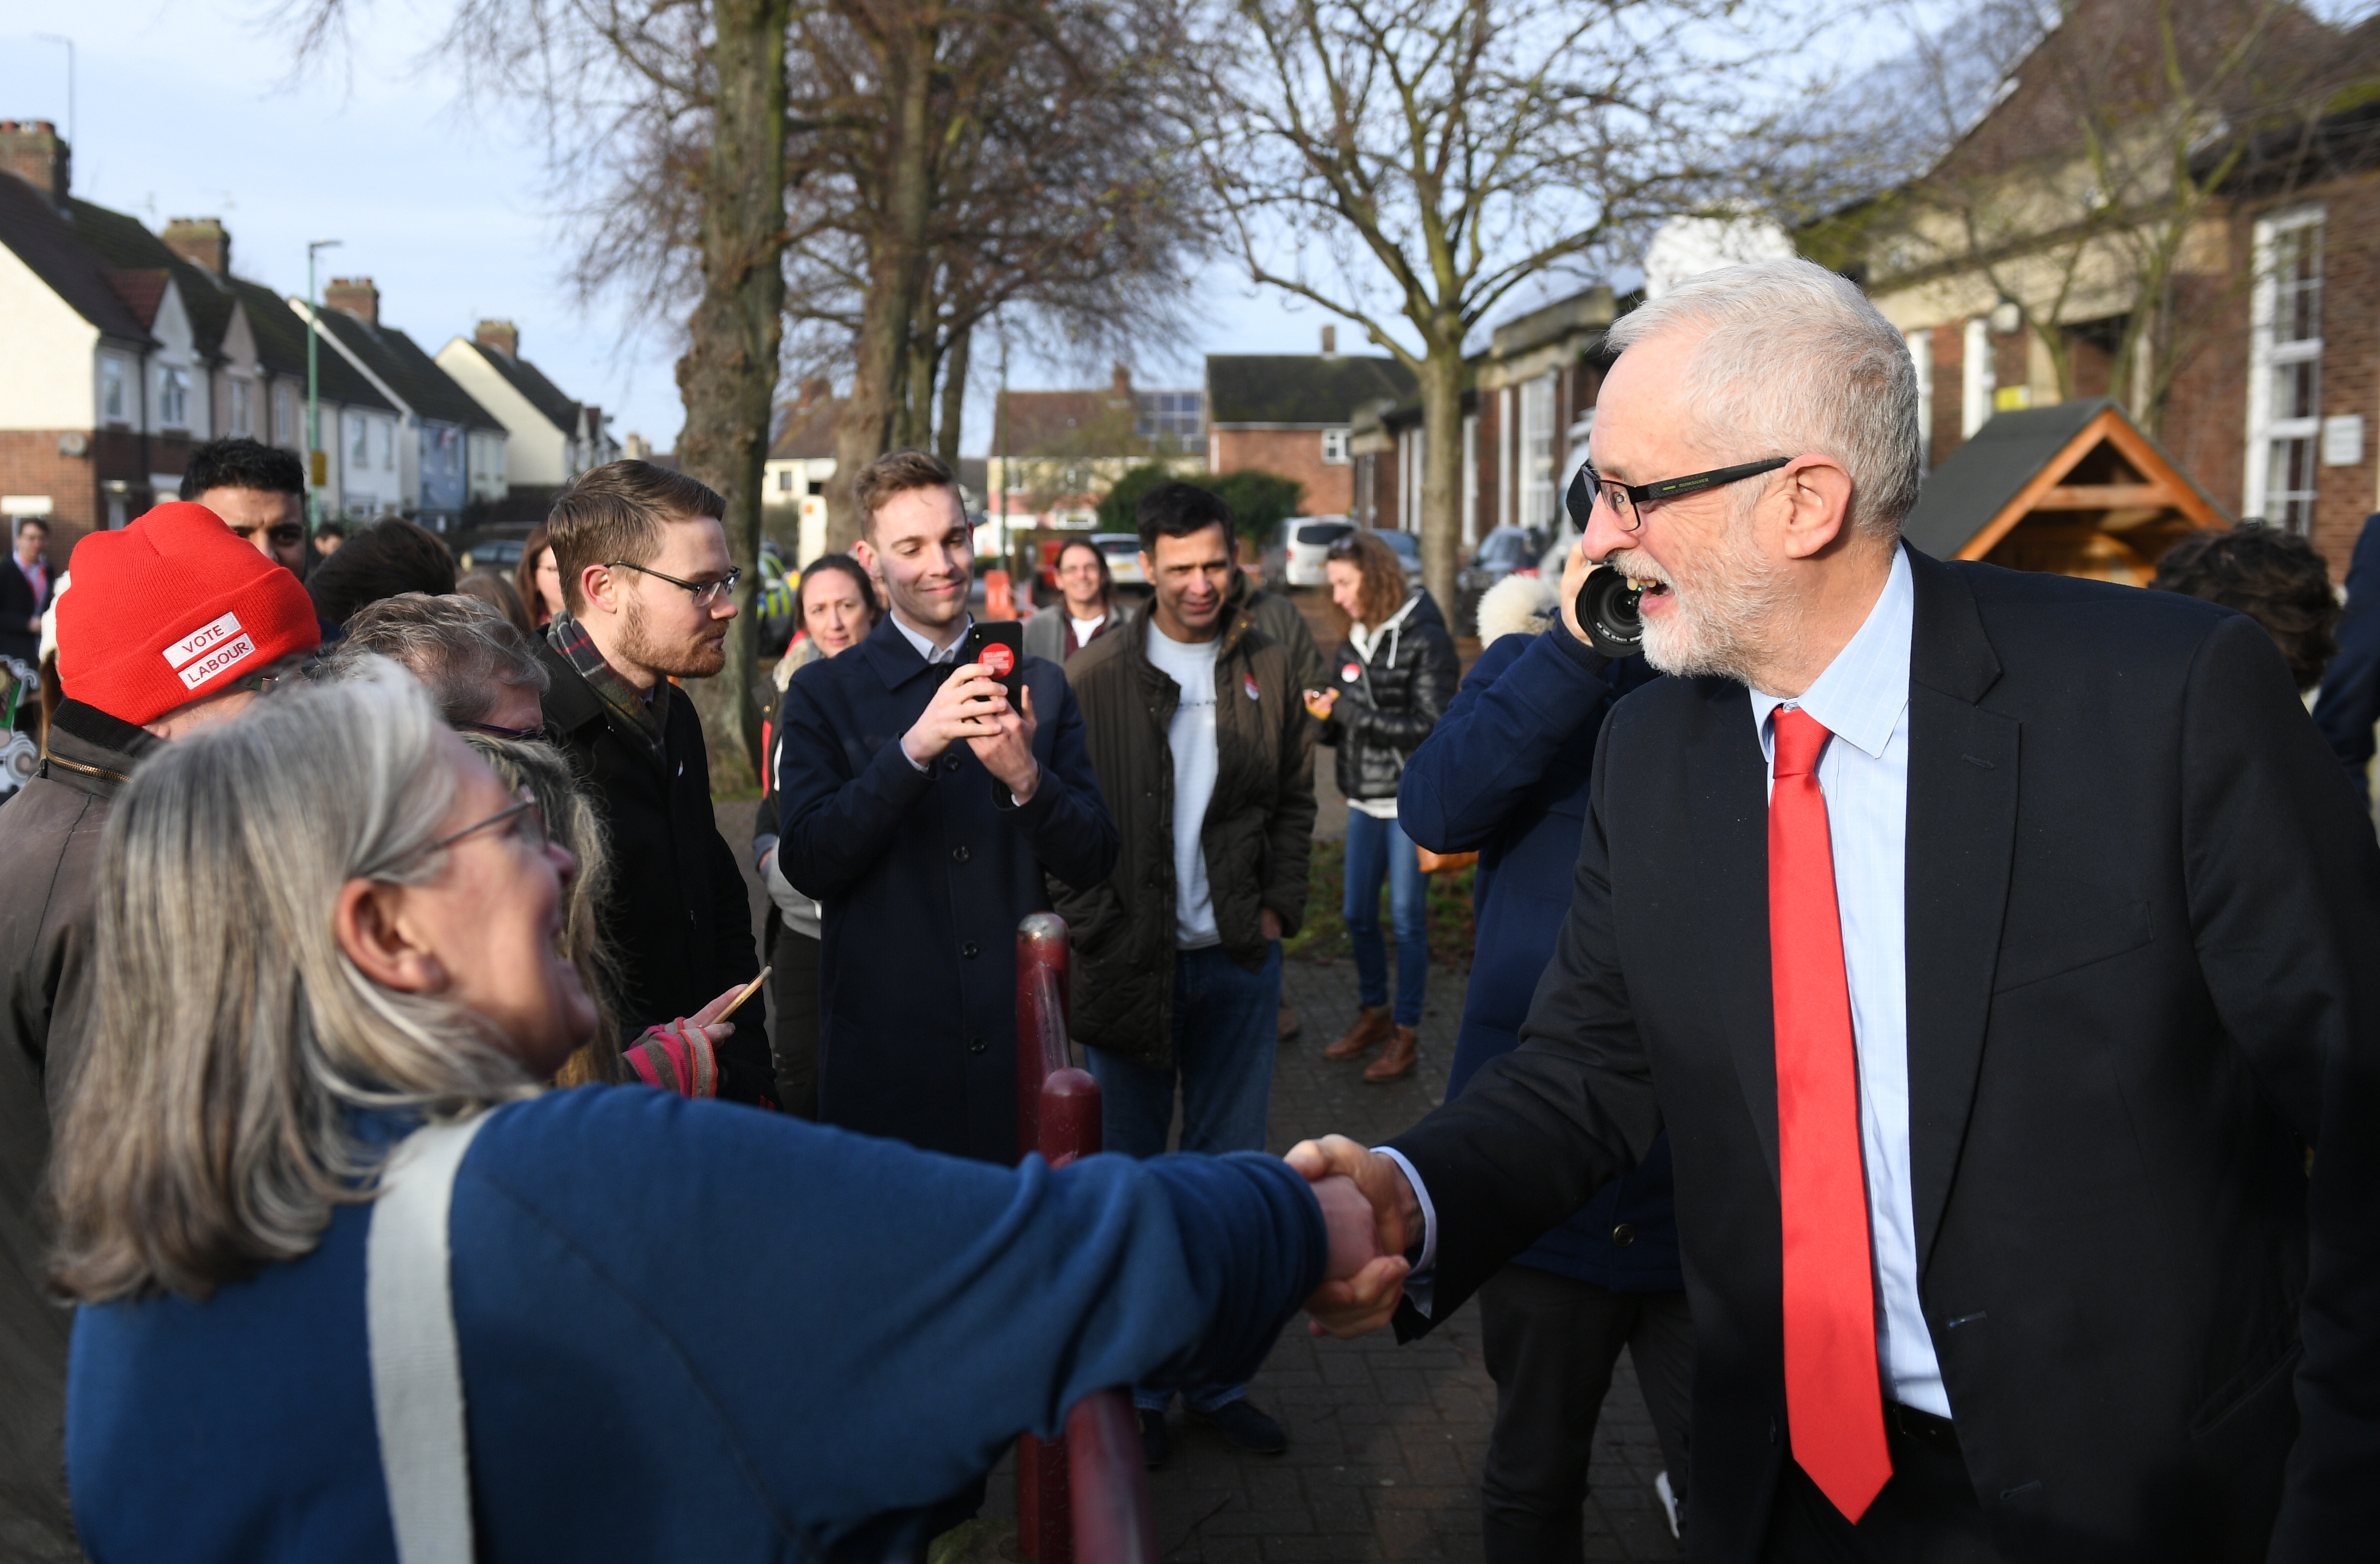 Labour leader Jeremy Corbyn after a visit to Fulbridge Academy in Peterborough, while on the General Election campaign trail.